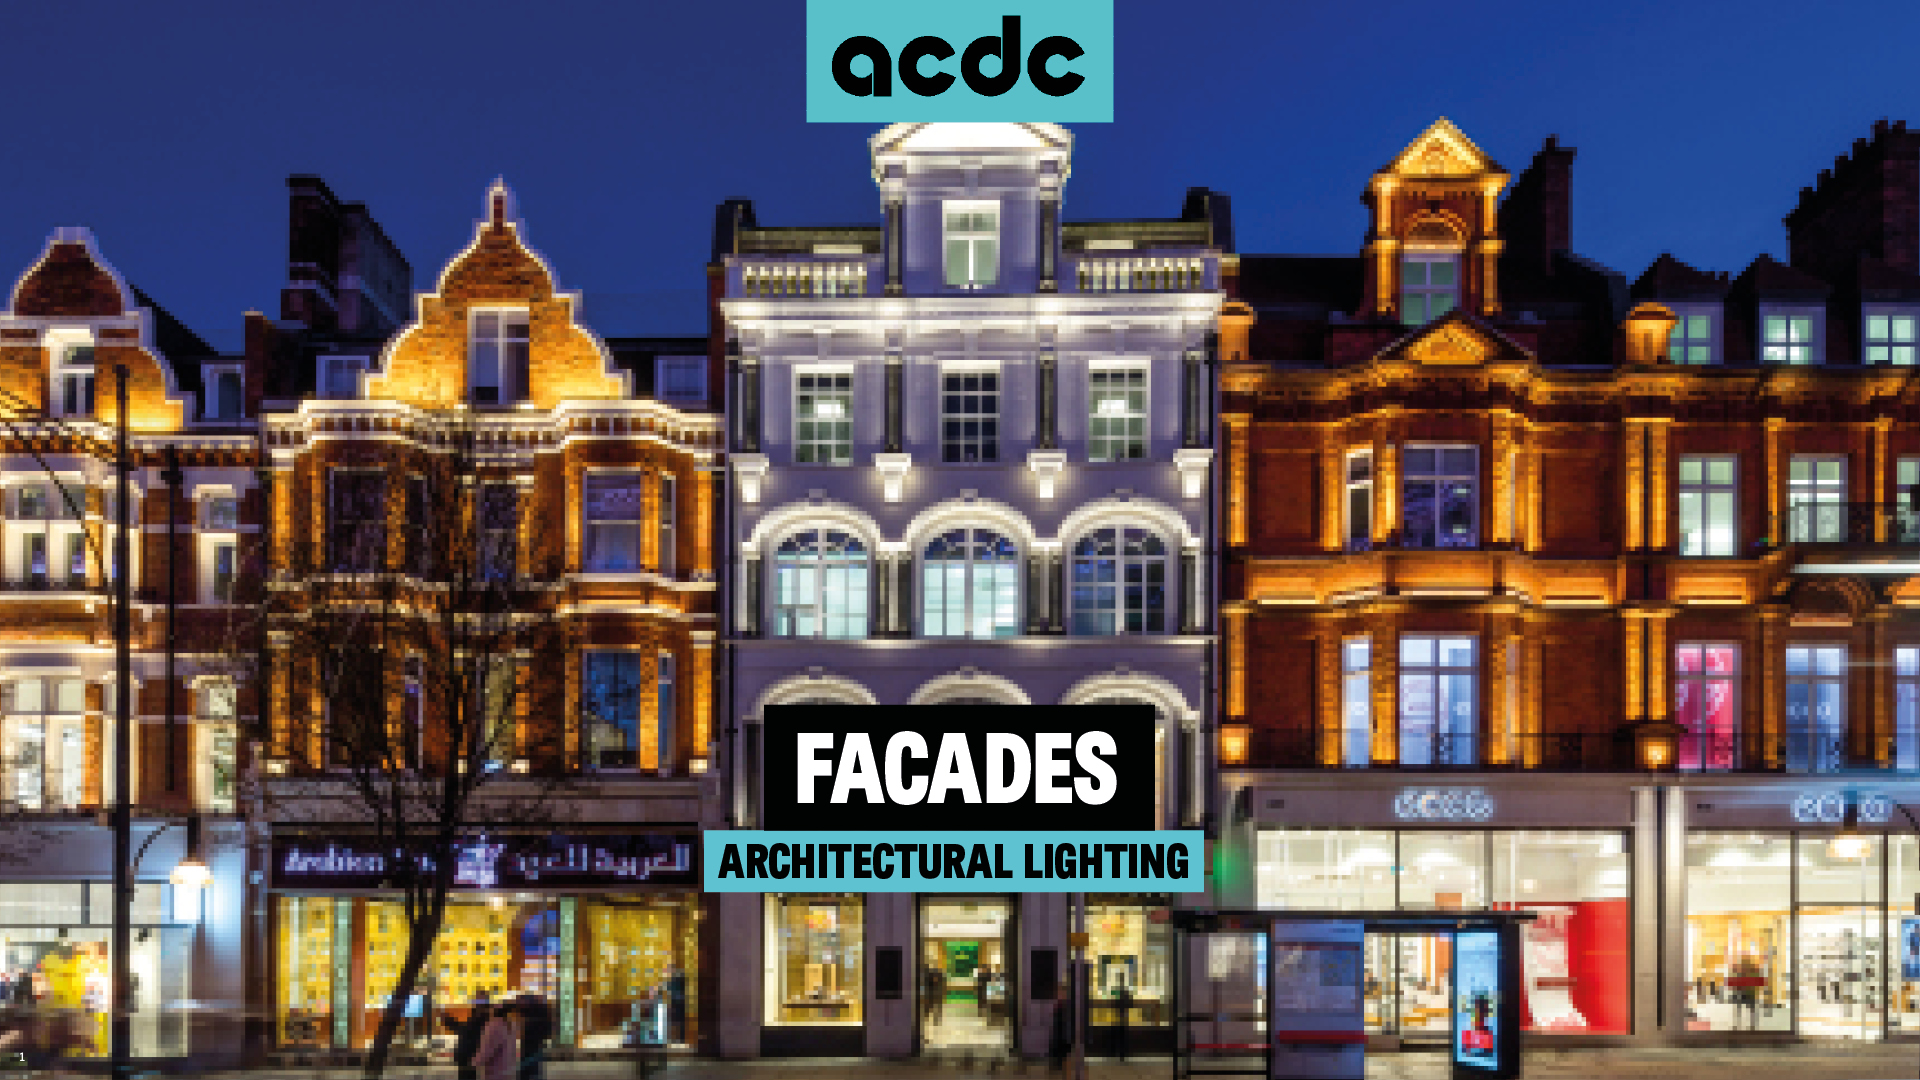 The considerations of facade lighting